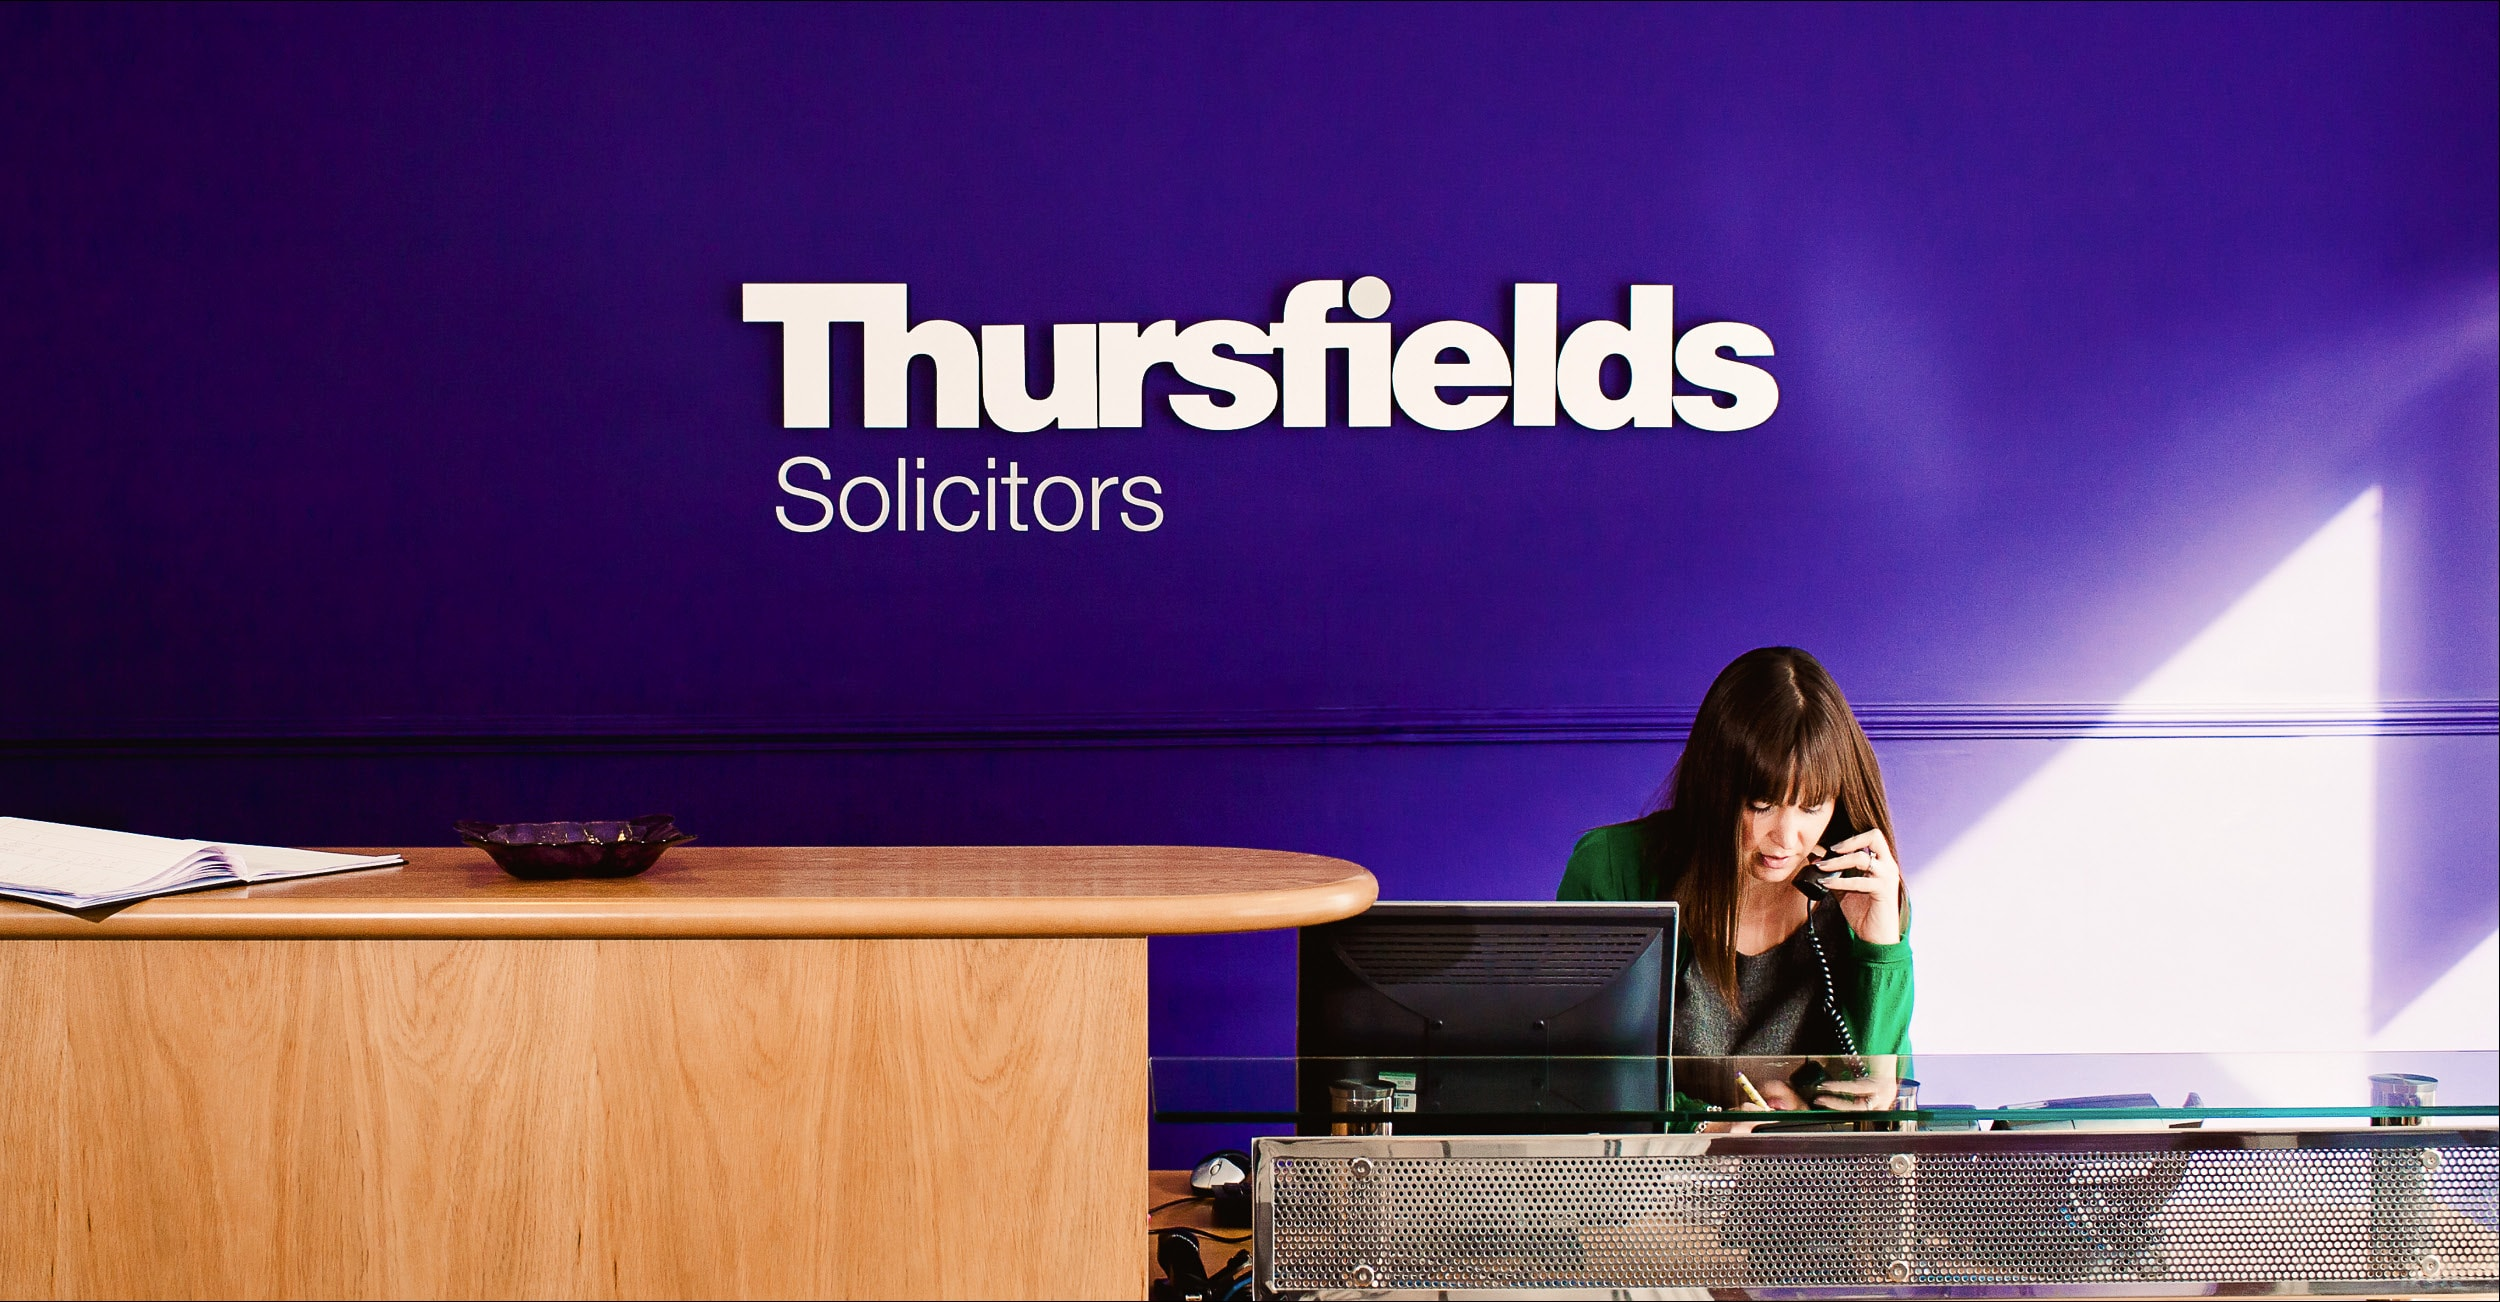 Thursfields Solicitors - Identity Update - Signage